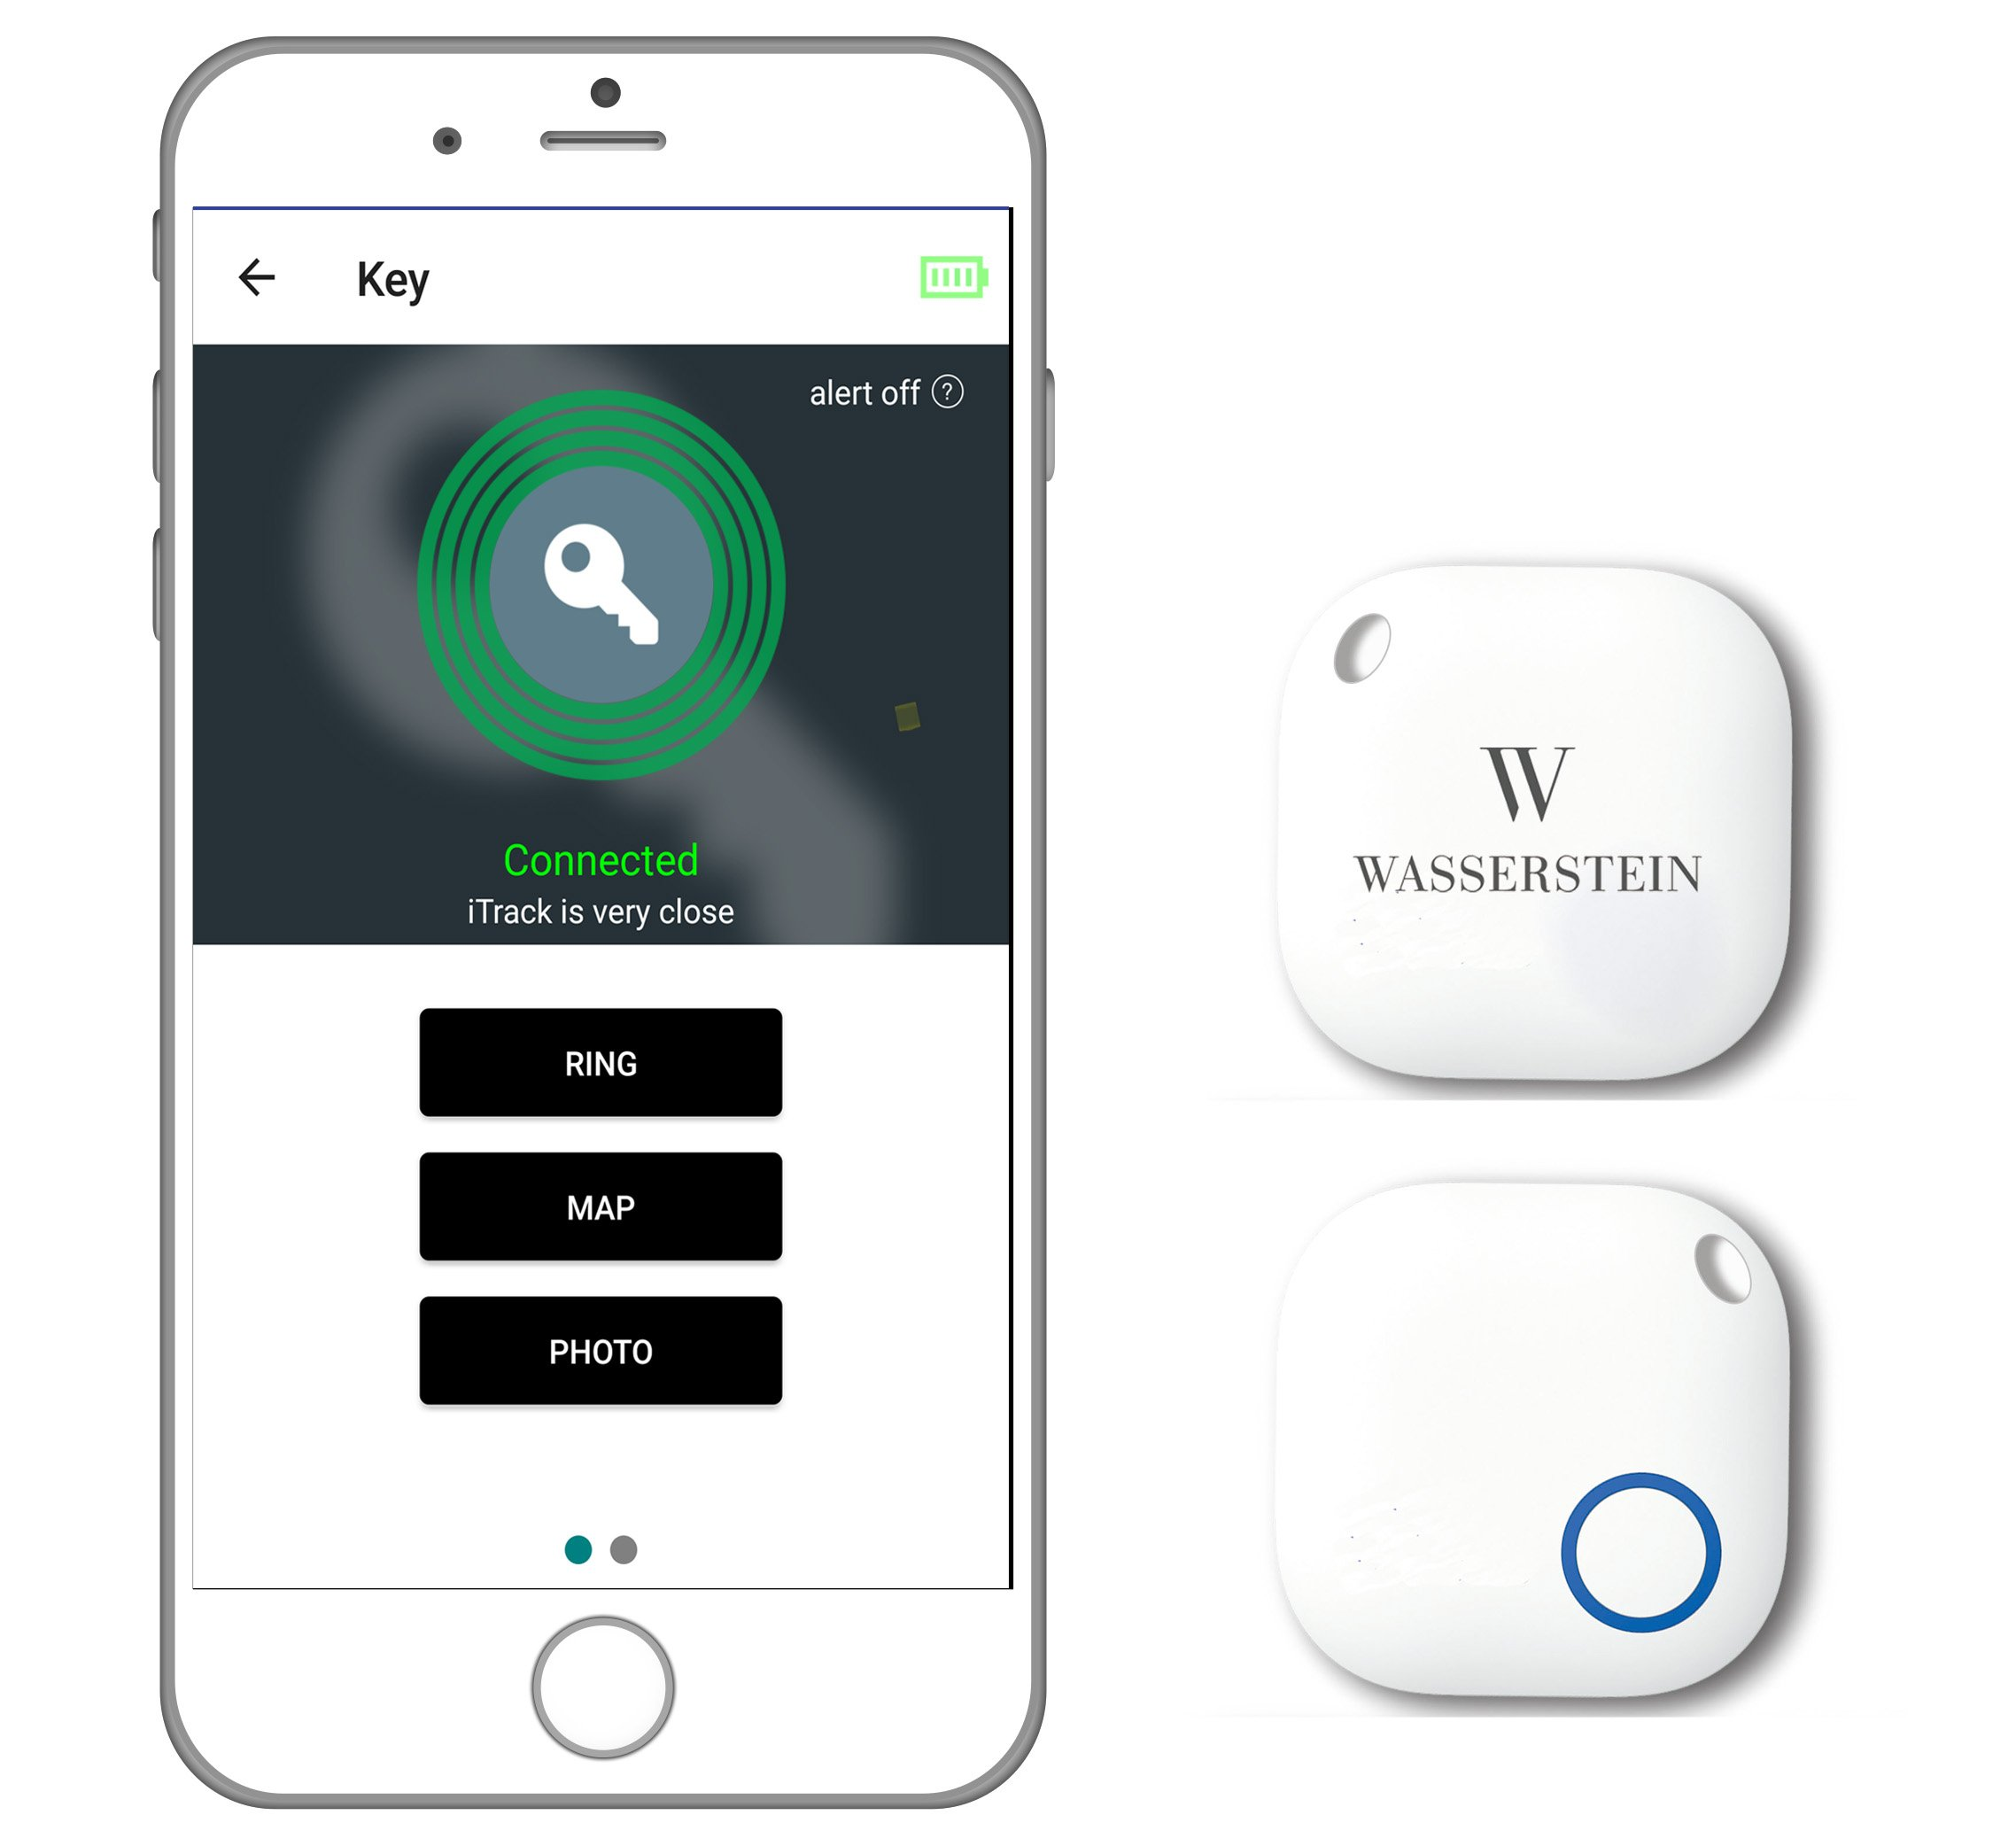 Bluetooth Key Finder, GPS Smartphone Tracker, Smart Anti-Lost Alarm, Remote Camera Controller for iOS & Android Devices by Wasserstein (2, White)